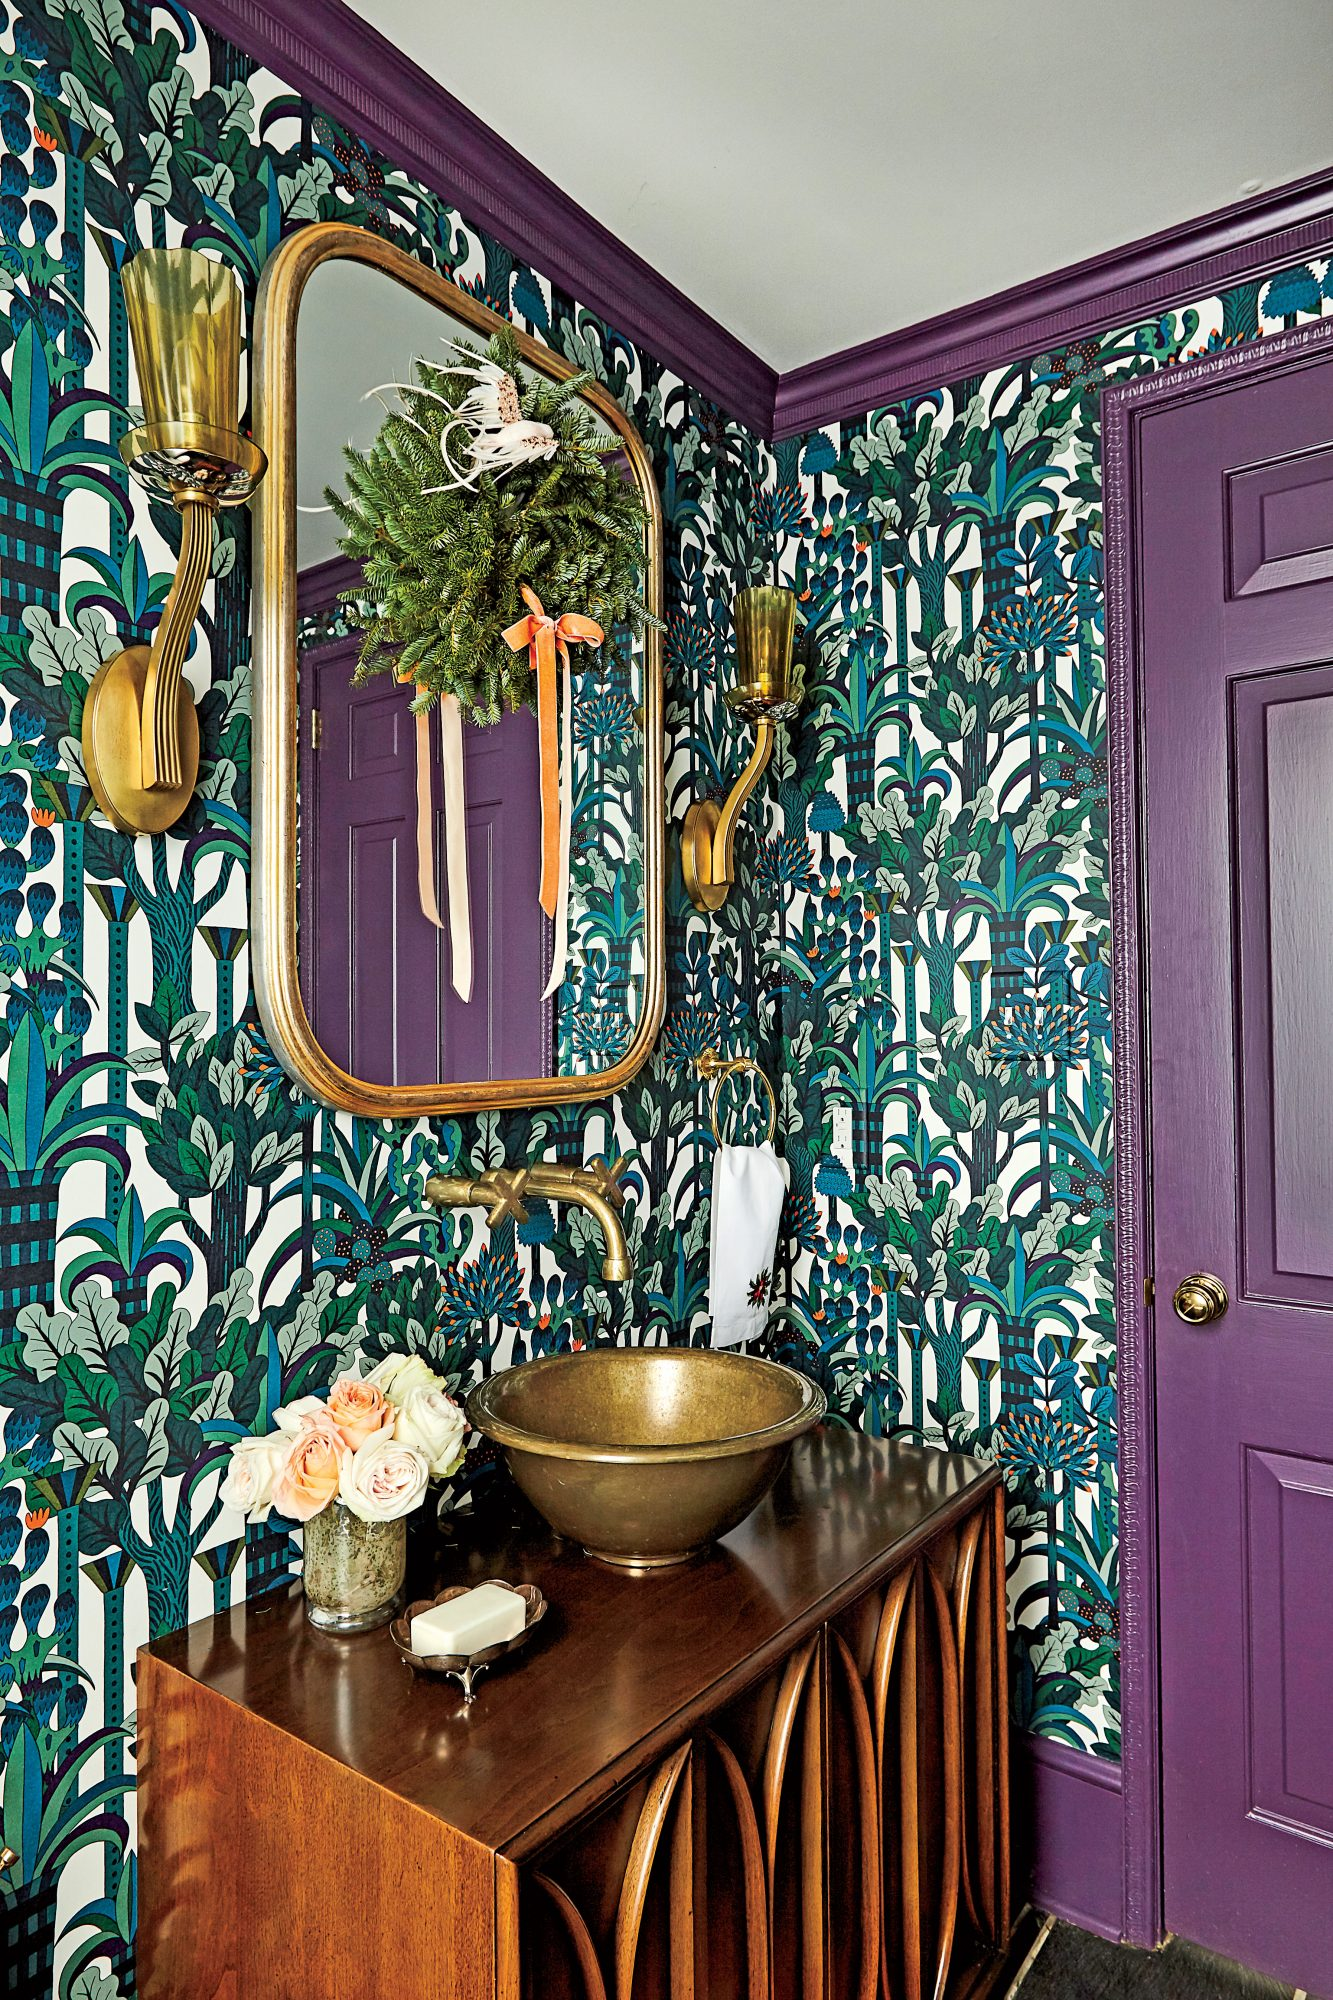 Charlotte Lucas Spartanburg, SC Purple and Turquoise Powder Room Decorated for Christmas